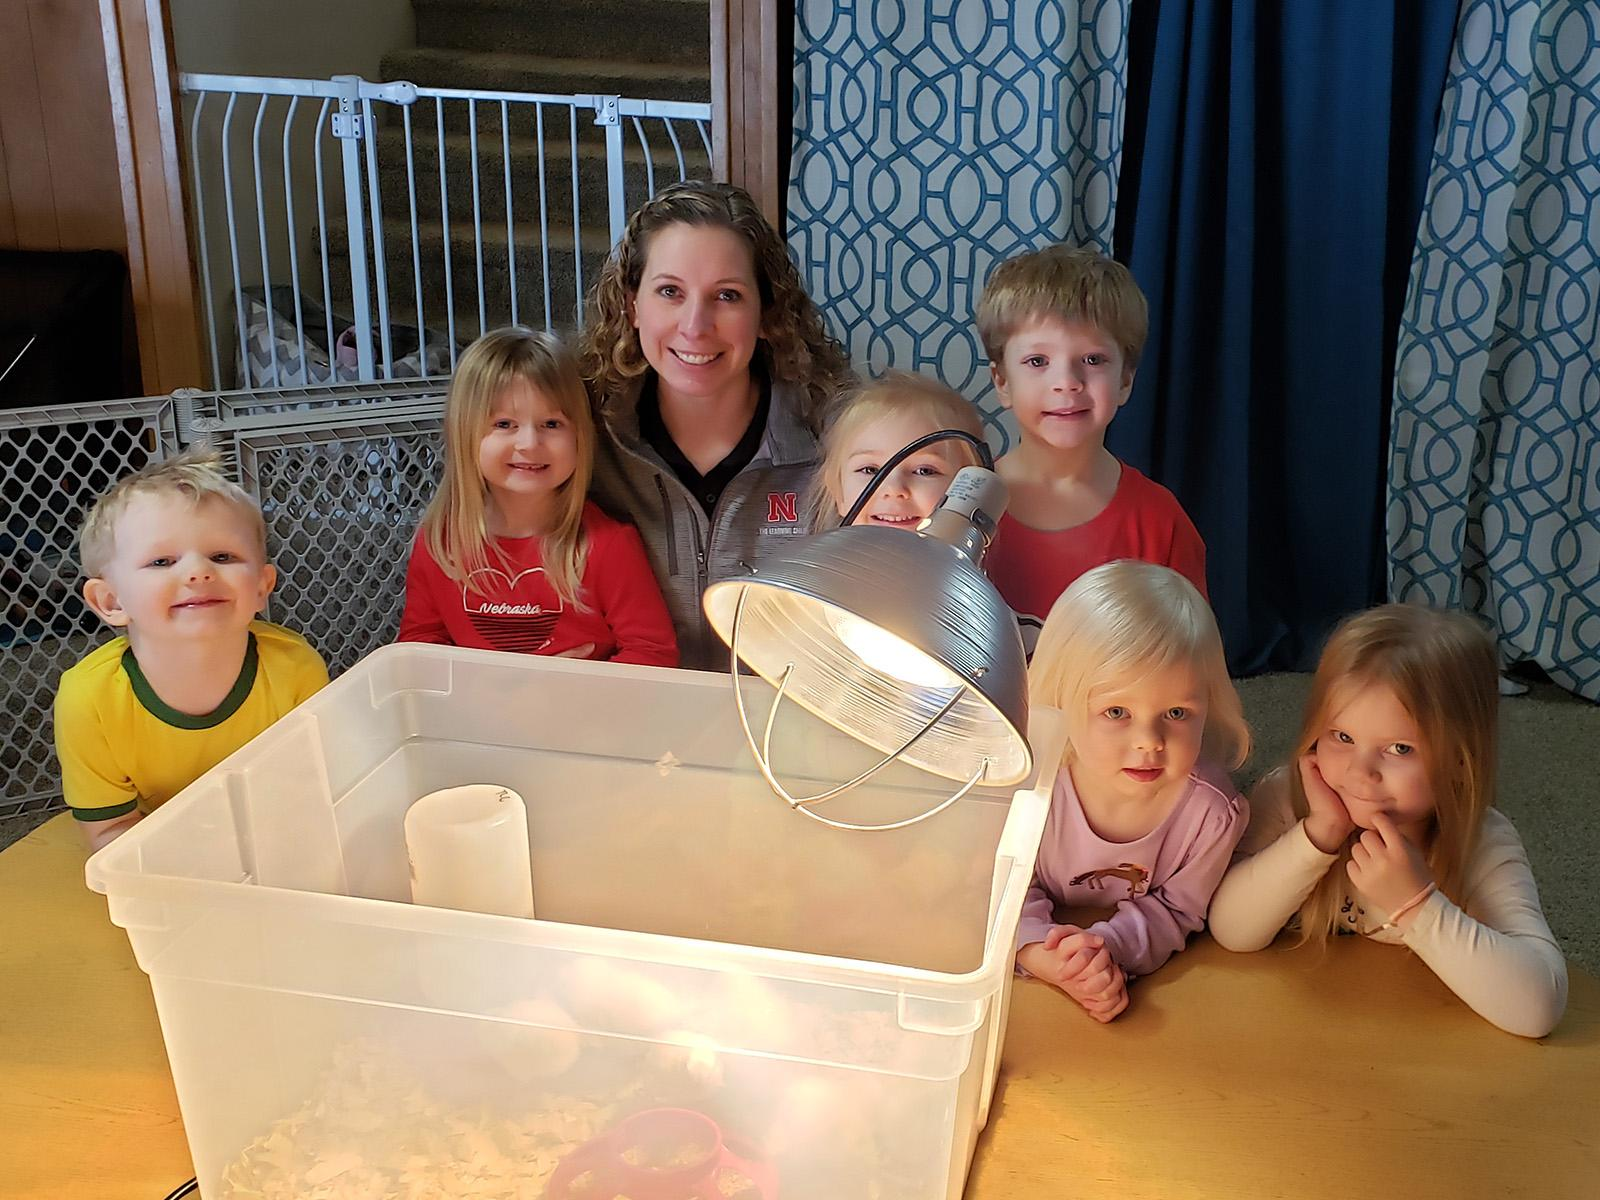 Group of young children behind a tote that has baby chicks in it